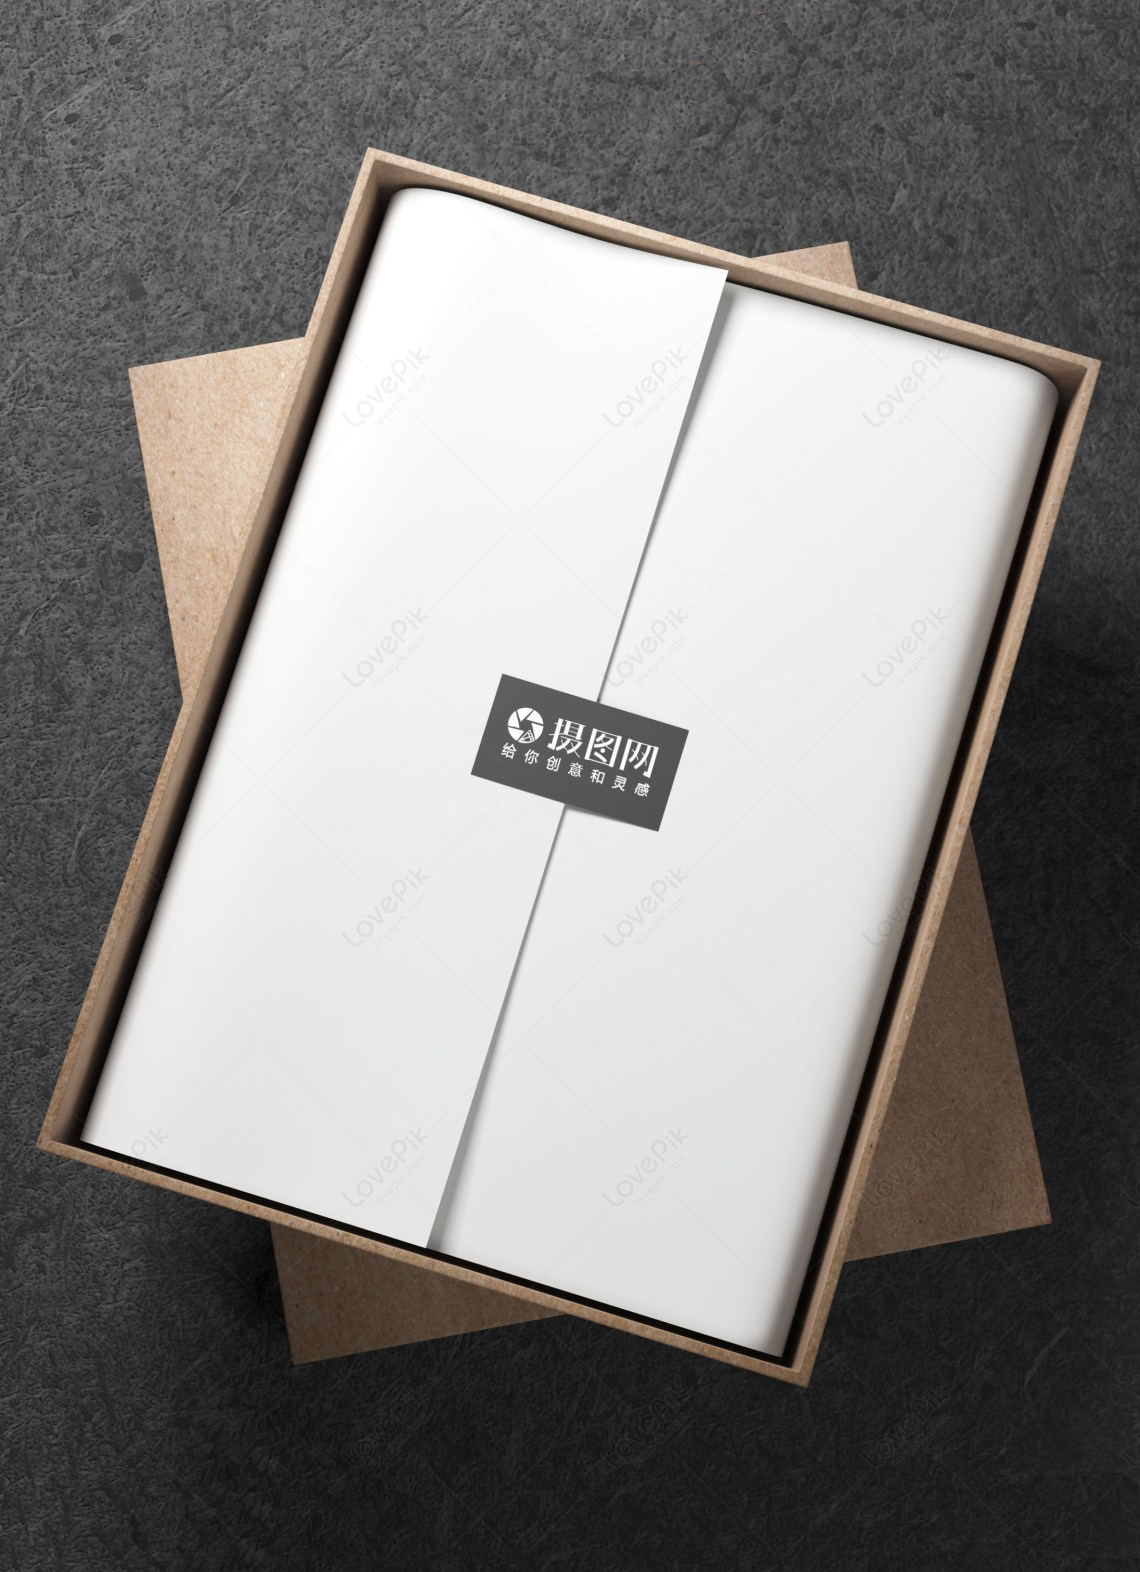 Download Gift box packaging mockup template image_picture free ...